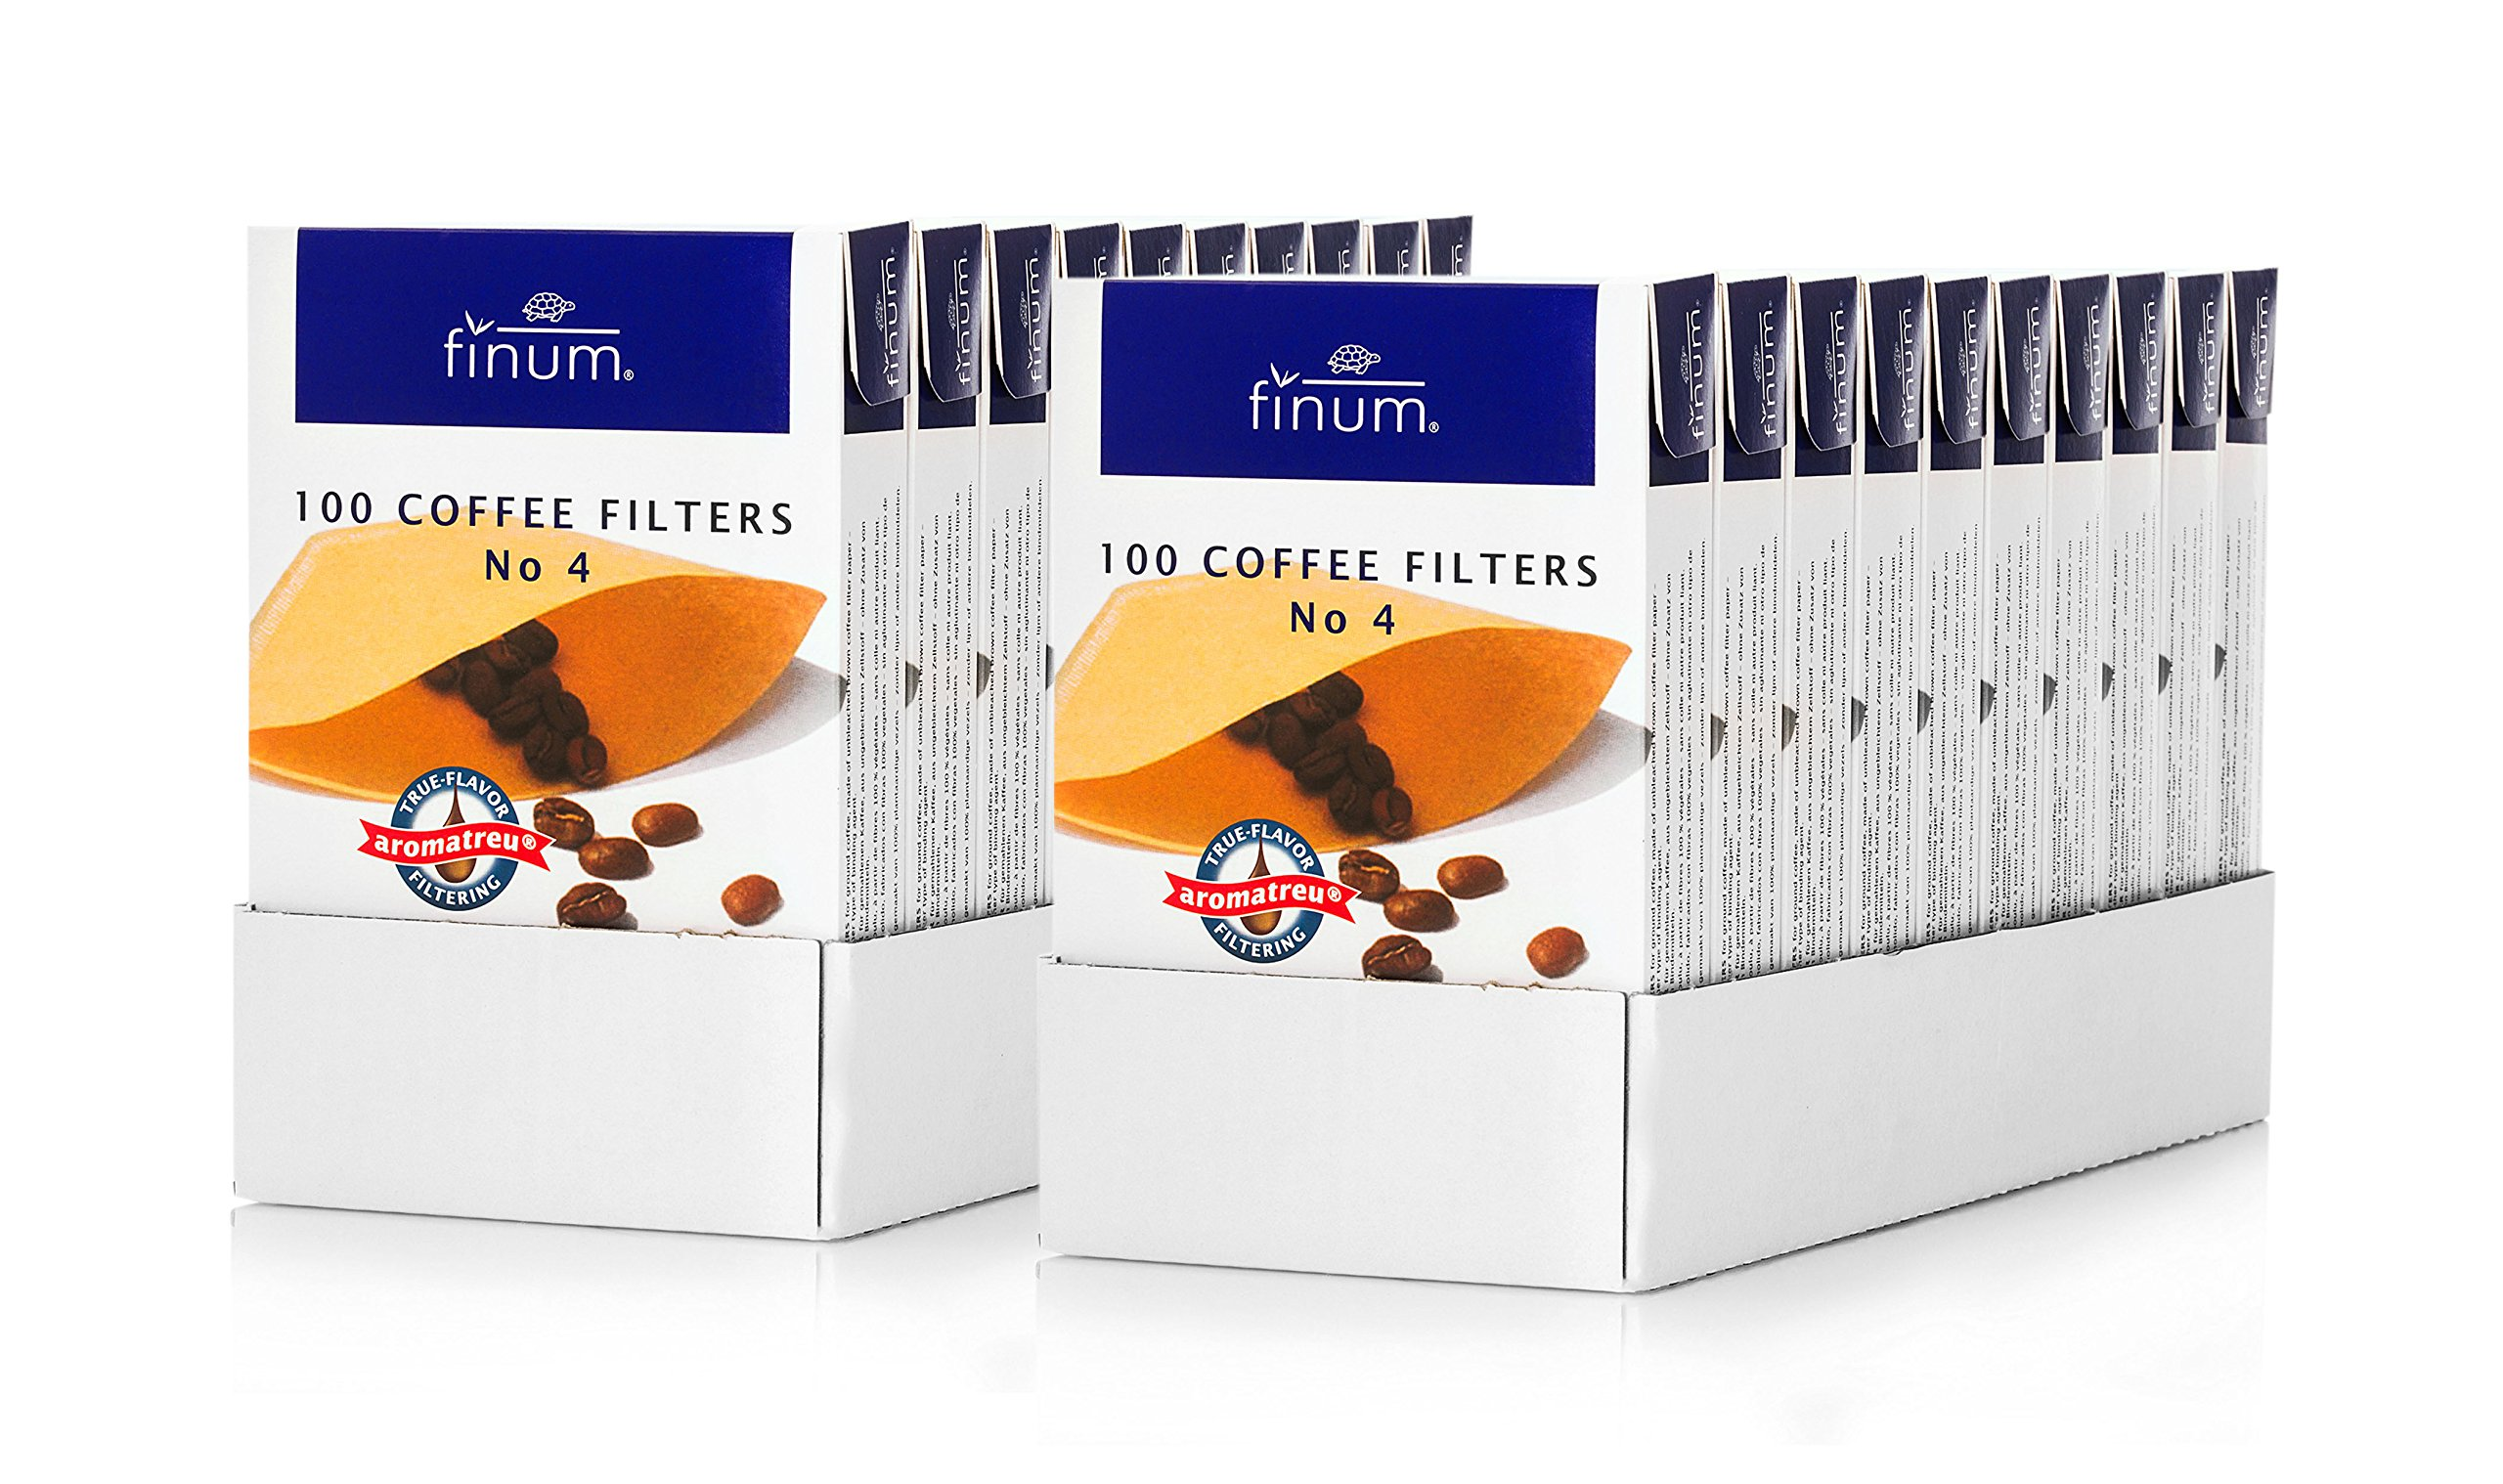 100 Coffee Filters No 4 (2 trays of 10 units)